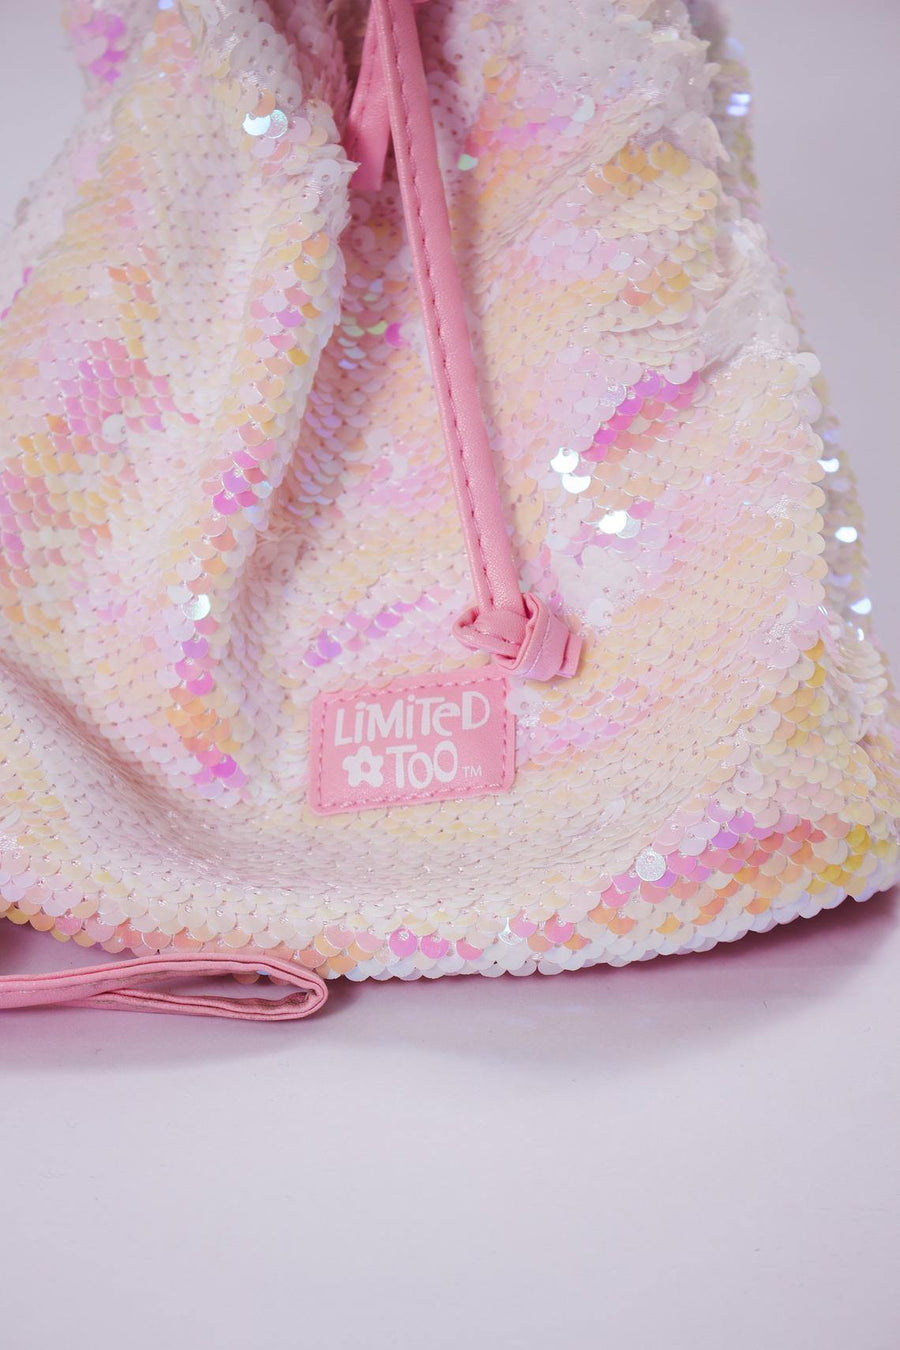 Limited Too Pink Glitter Purse - Mawoolisa